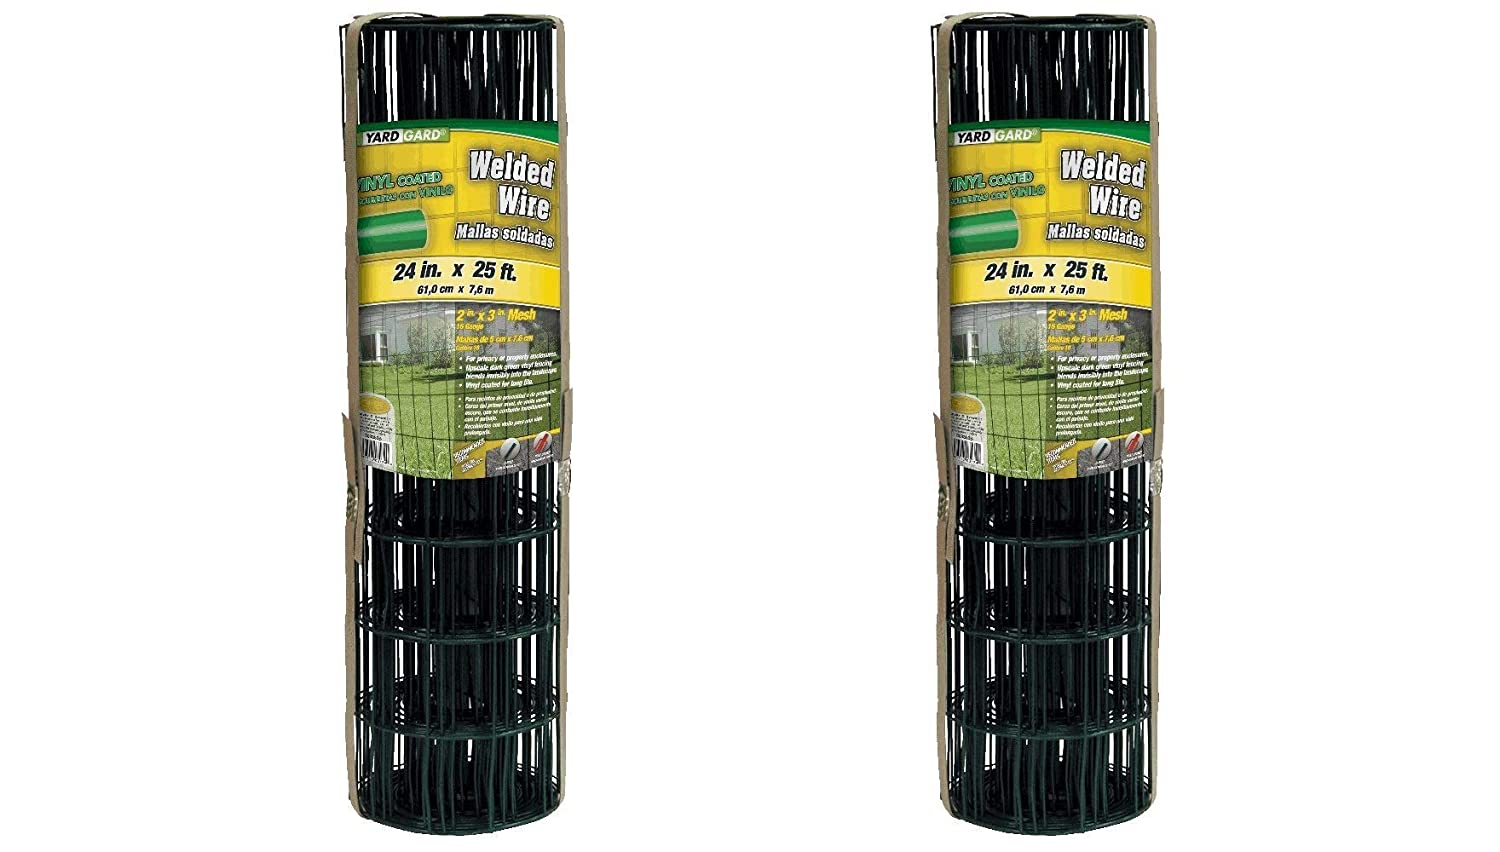 YARDGARD 308350B 2 Inch by 3 Inch Mesh, 2 ft by 25 ft 16 Gauge Junior Roll of PVC Coated Welded Wire Fence(Dark Green) (Pack of 2)